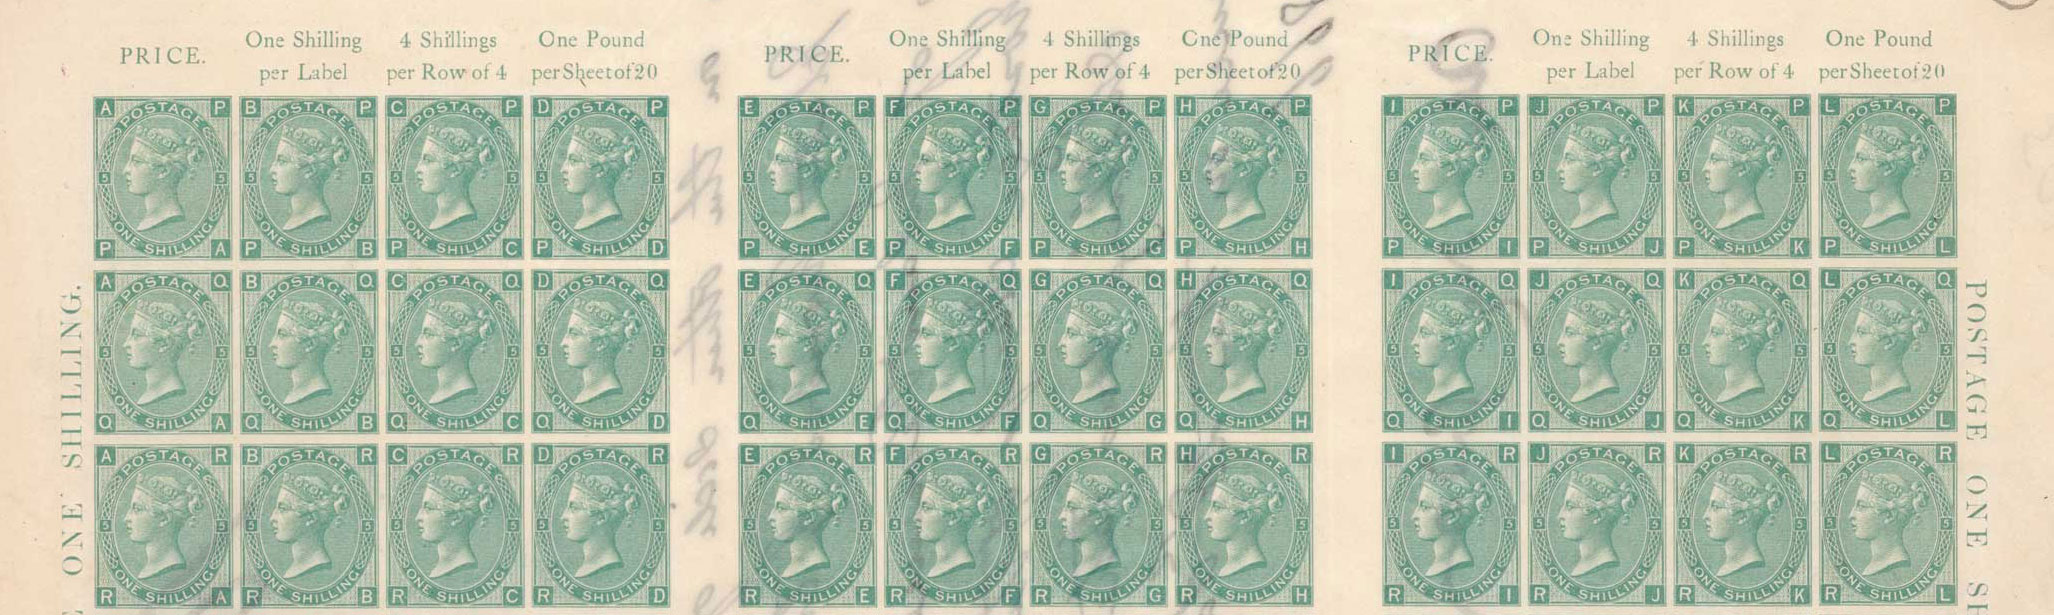 Close up image of three lines from the sheet of one shilling green stamps.